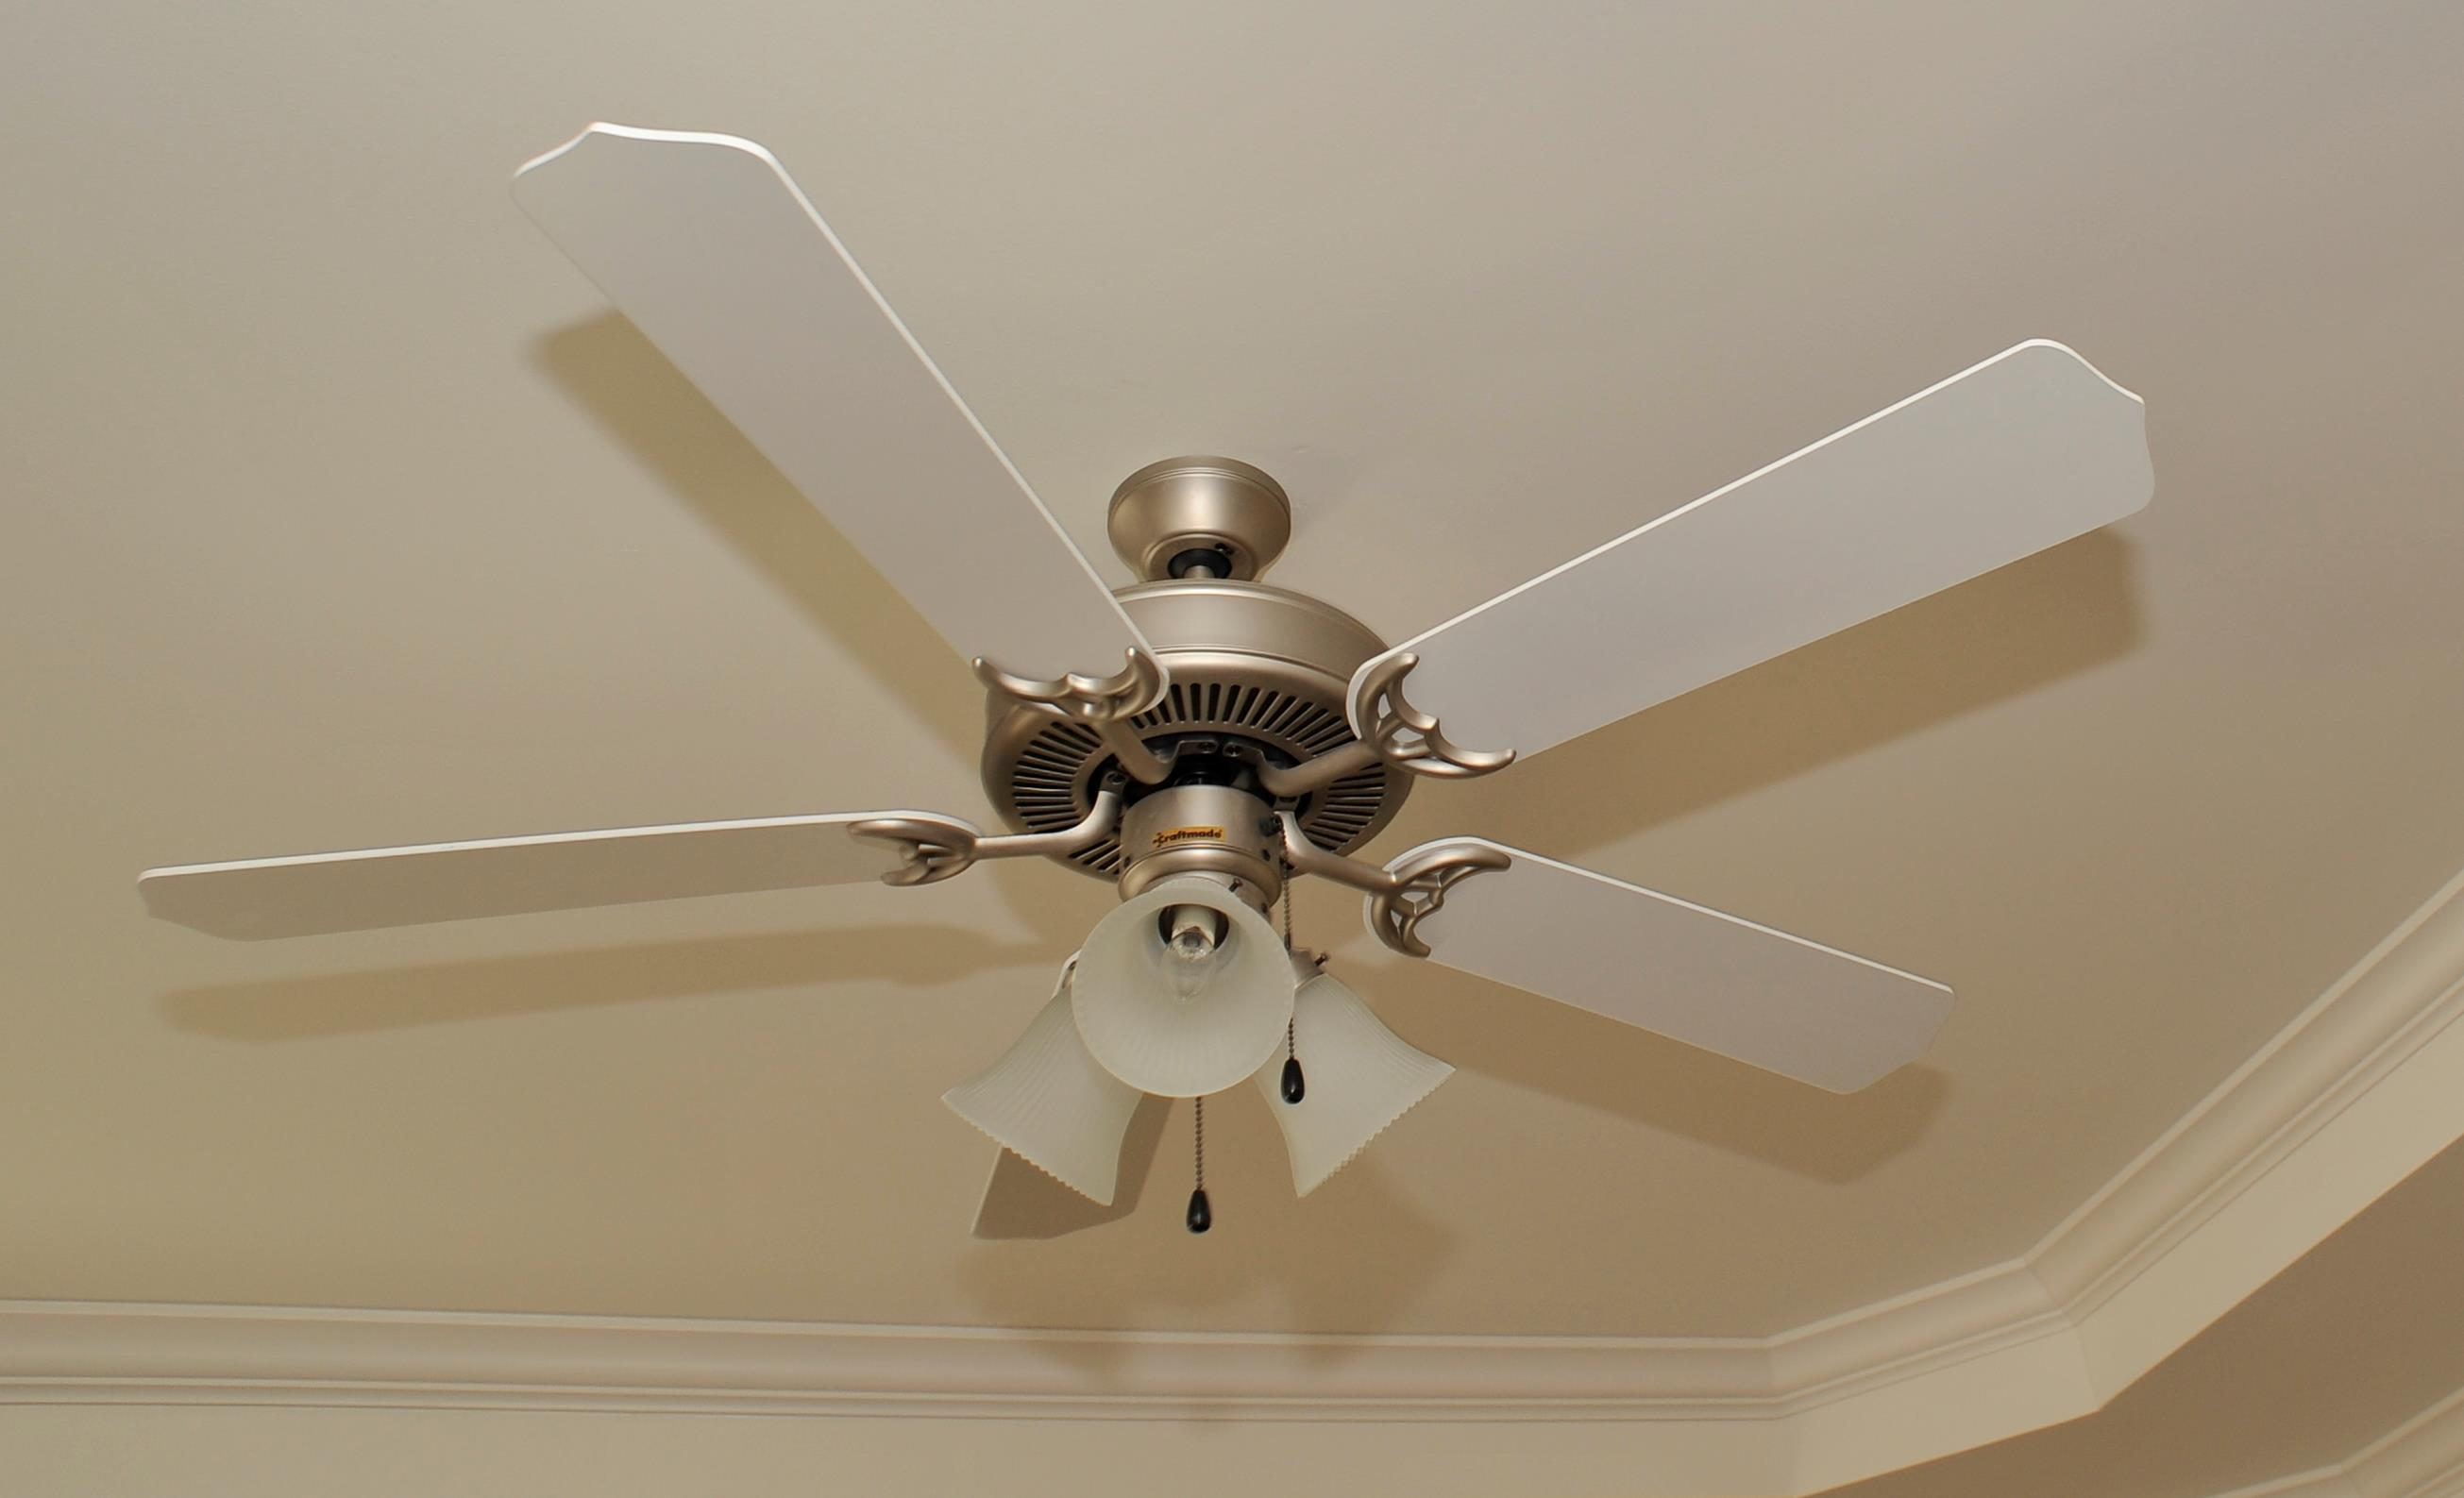 3 Benefits Of Ceiling Fans In Your New Home